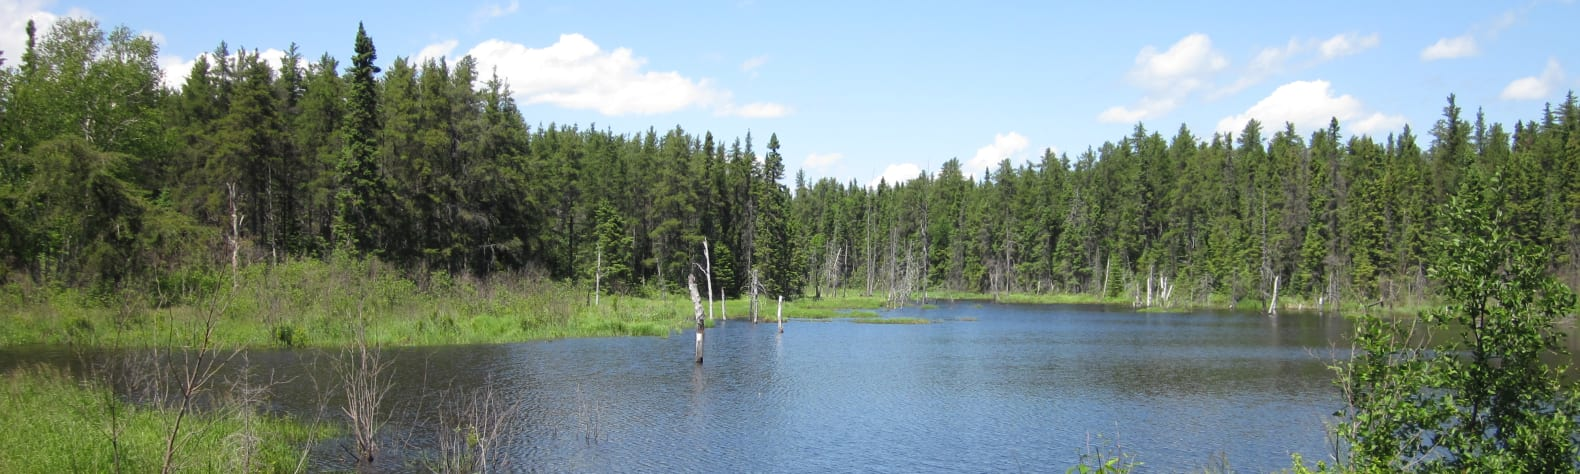 Pointe-Taillon National Park